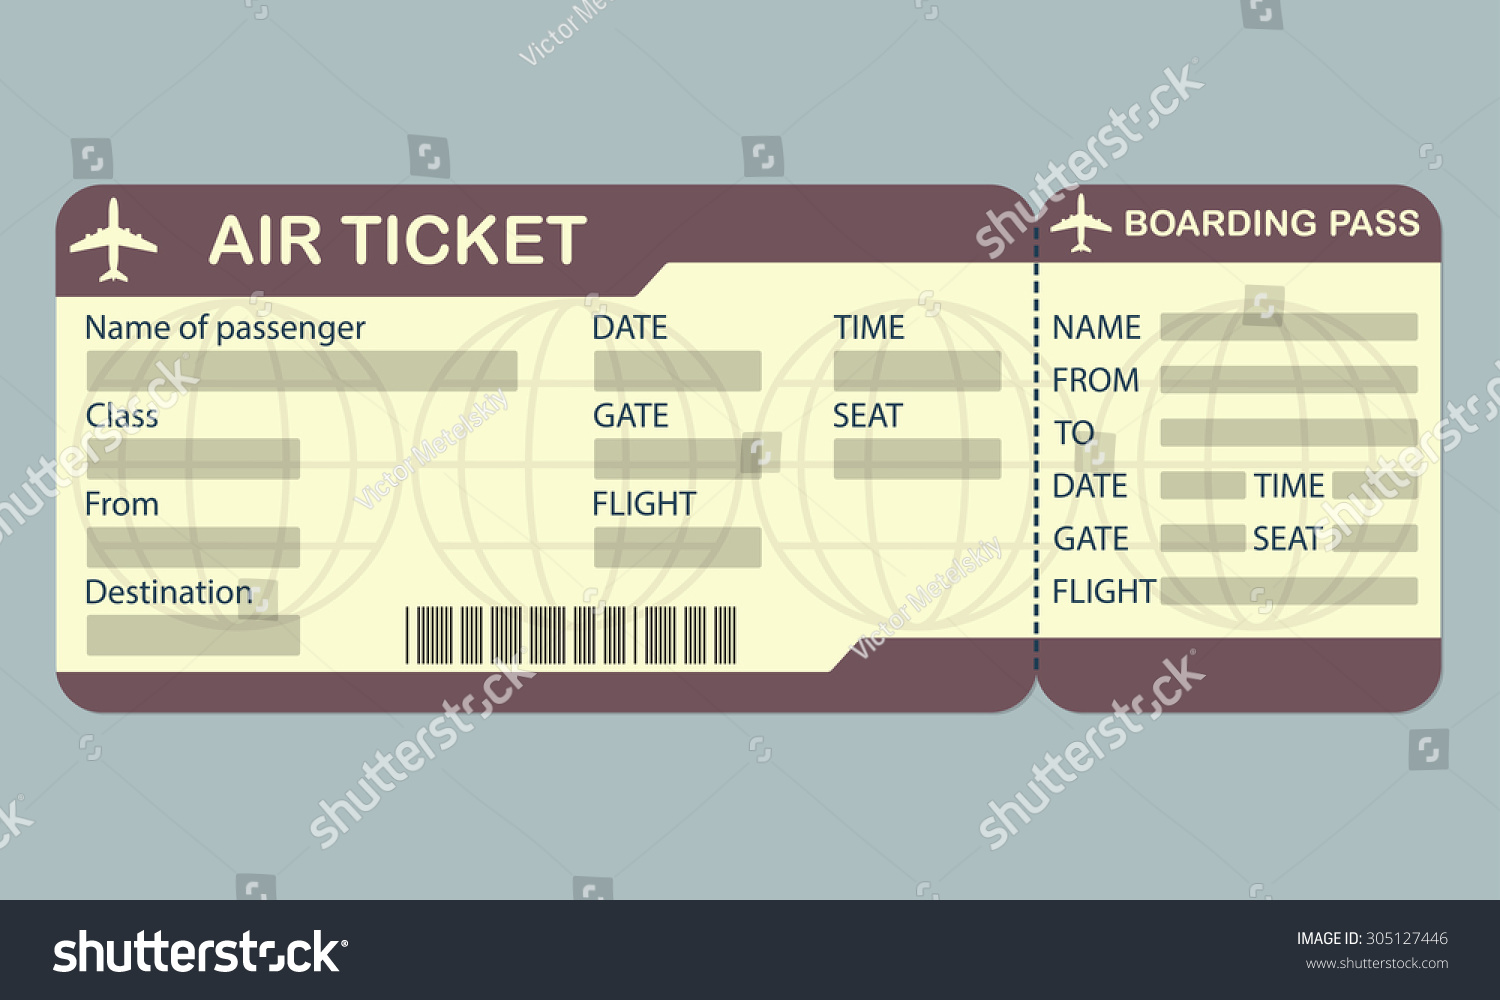 airline boarding pass ticket template detailed 305127446 shutterstock. Black Bedroom Furniture Sets. Home Design Ideas